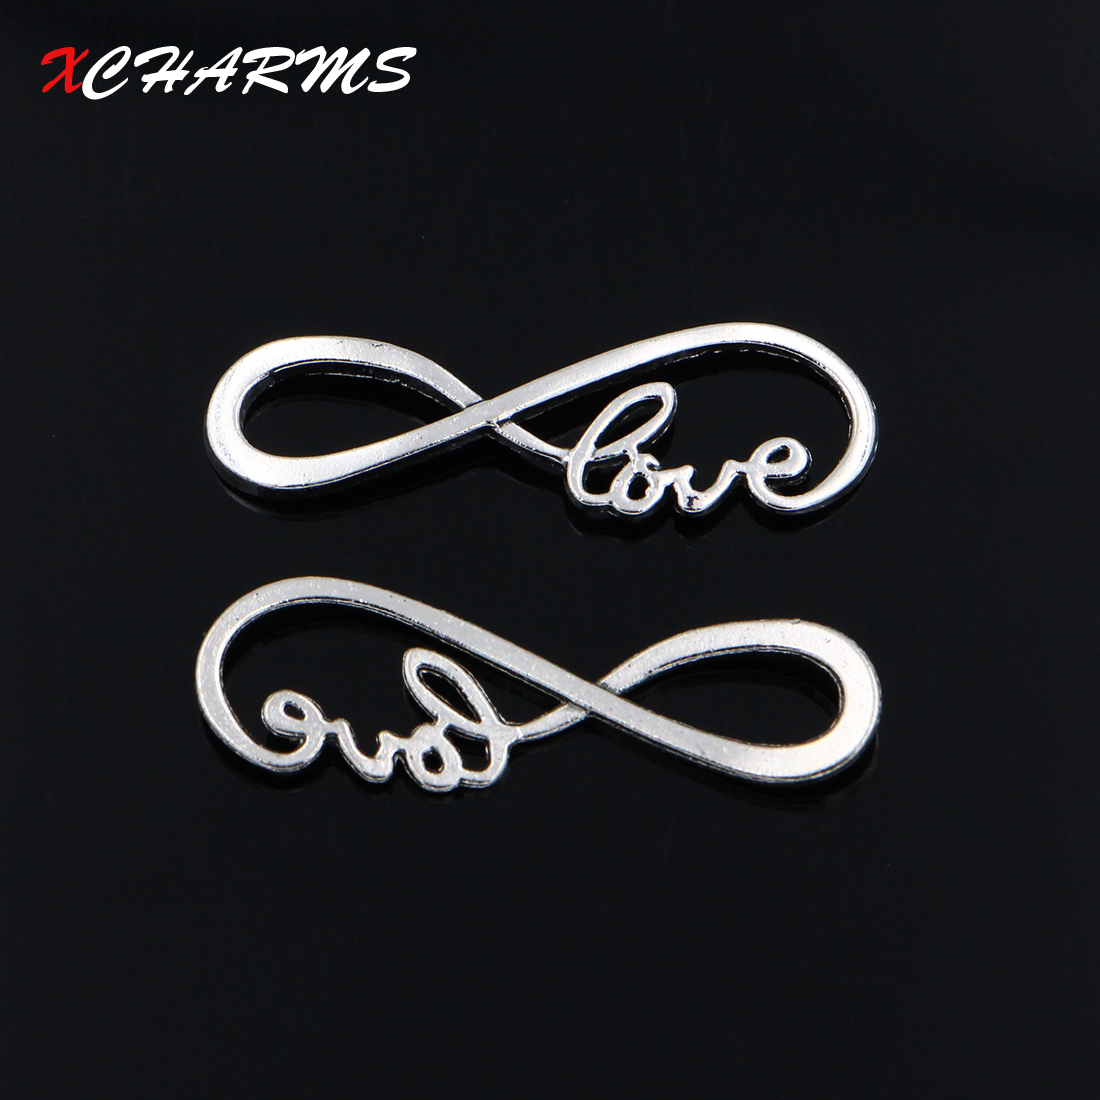 XCHARMS 10pcs/lot Jewelry Findings Silver Color Infinity Love Connector 38*12mm Antique Making fit DIY Bracelet NecklaceXCHARMS 10pcs/lot Jewelry Findings Silver Color Infinity Love Connector 38*12mm Antique Making fit DIY Bracelet Necklace